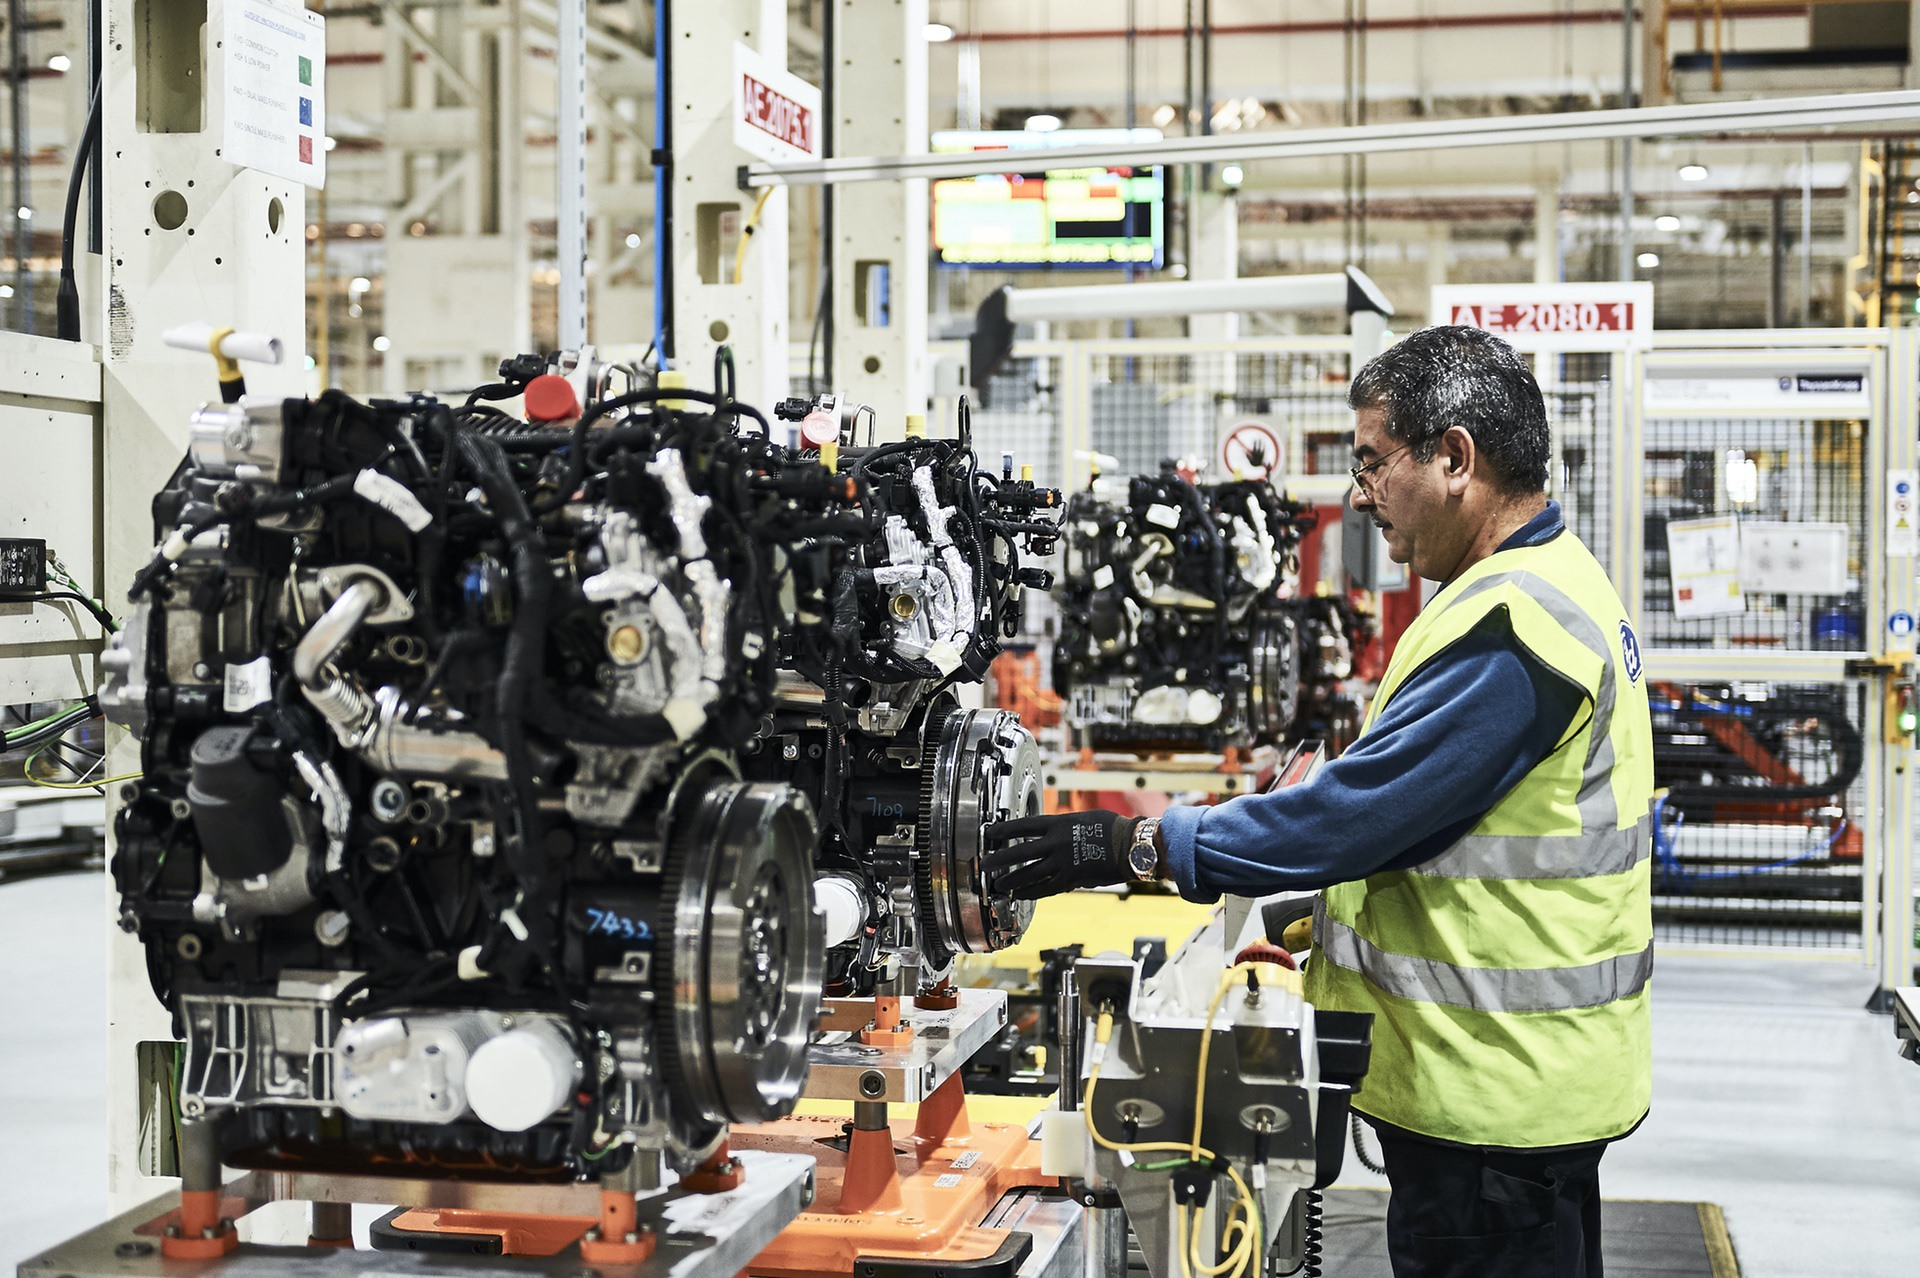 Energy Use Halved at Ford's New Diesel Engine Production Line; Annual Water Savings Could Fill Seven Olympic Pools